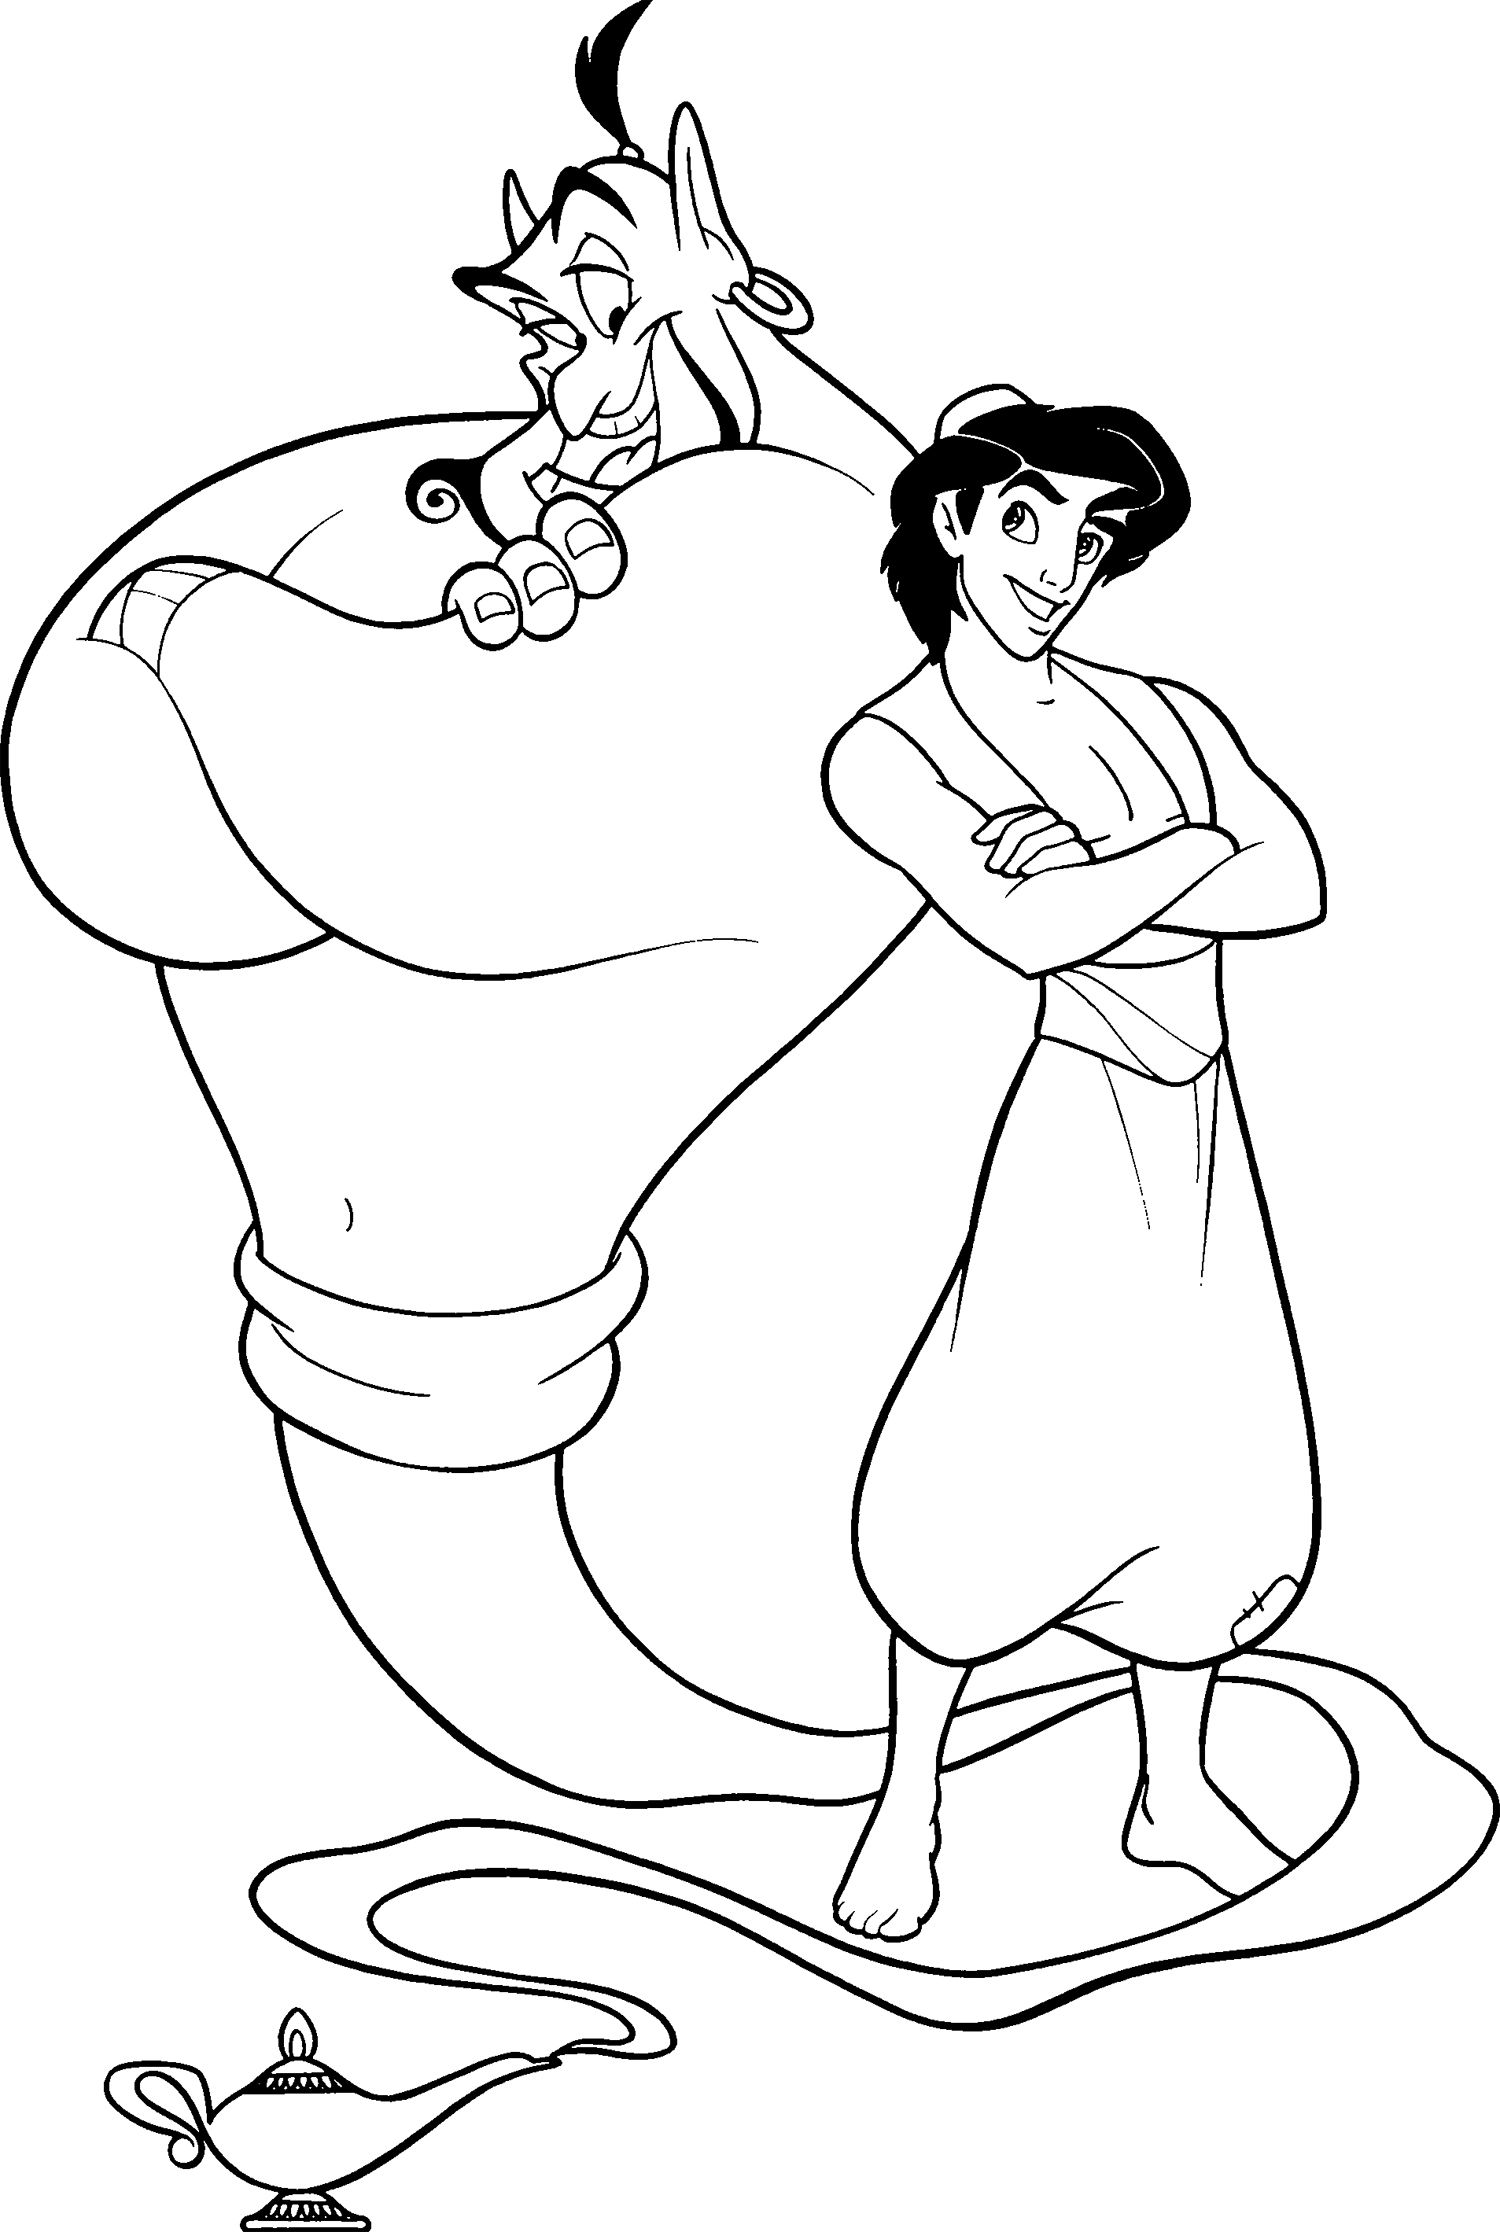 coloring pages of aledin - photo#47